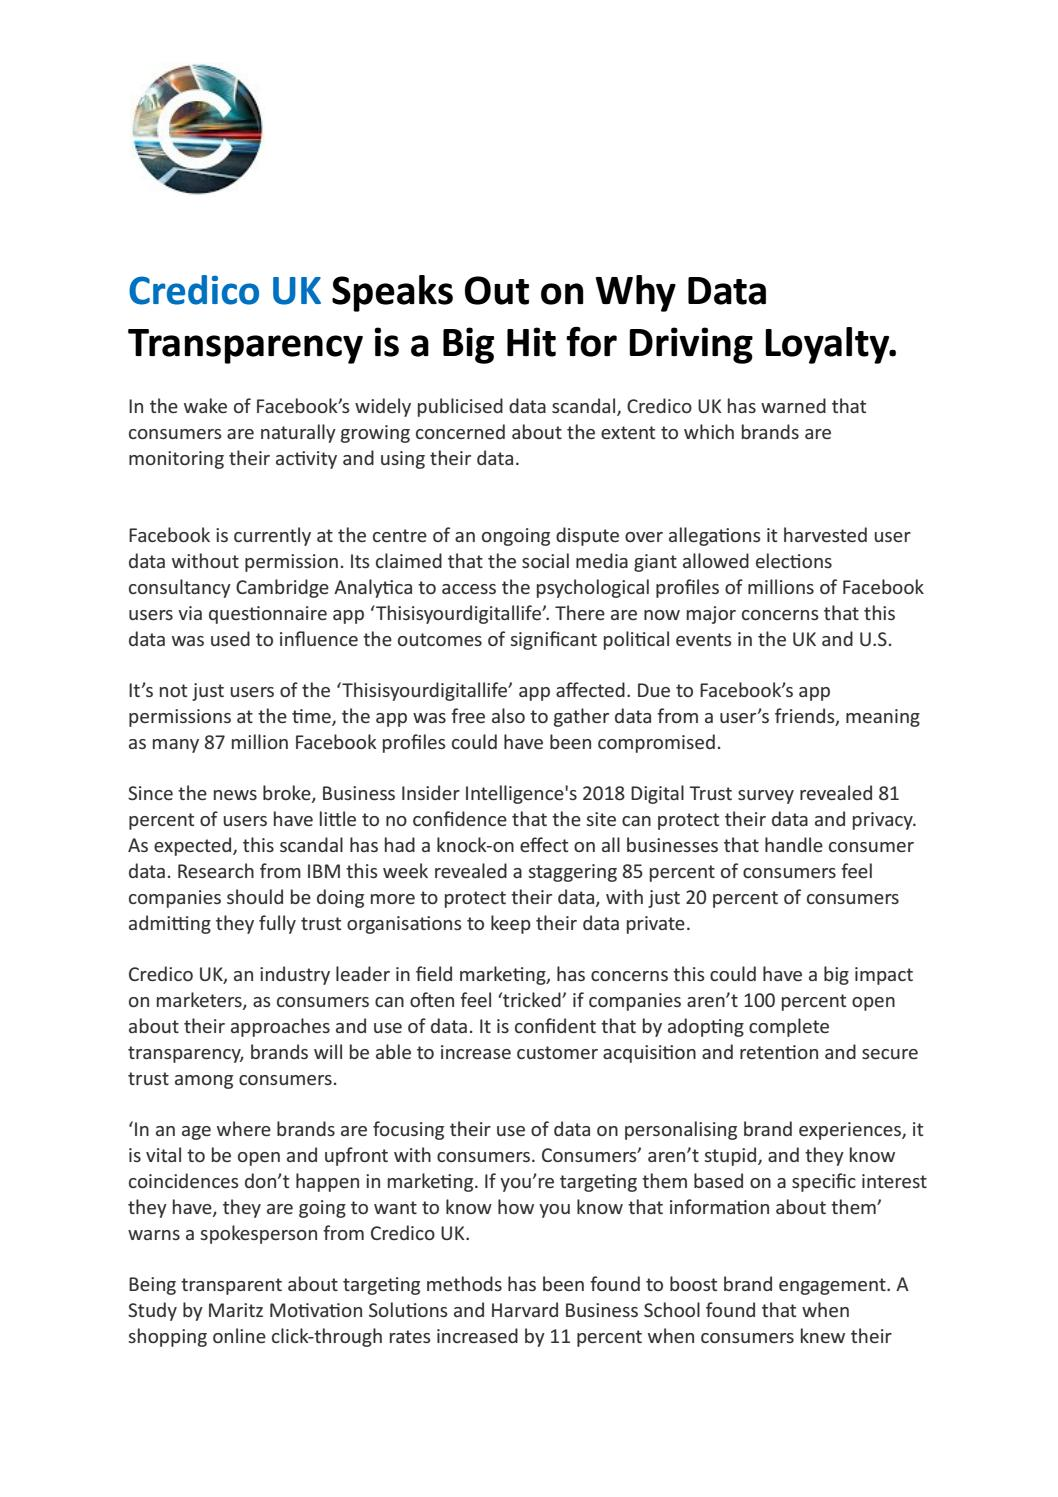 Credico UK Speaks Out on Why Data Transparency is a Big Hit